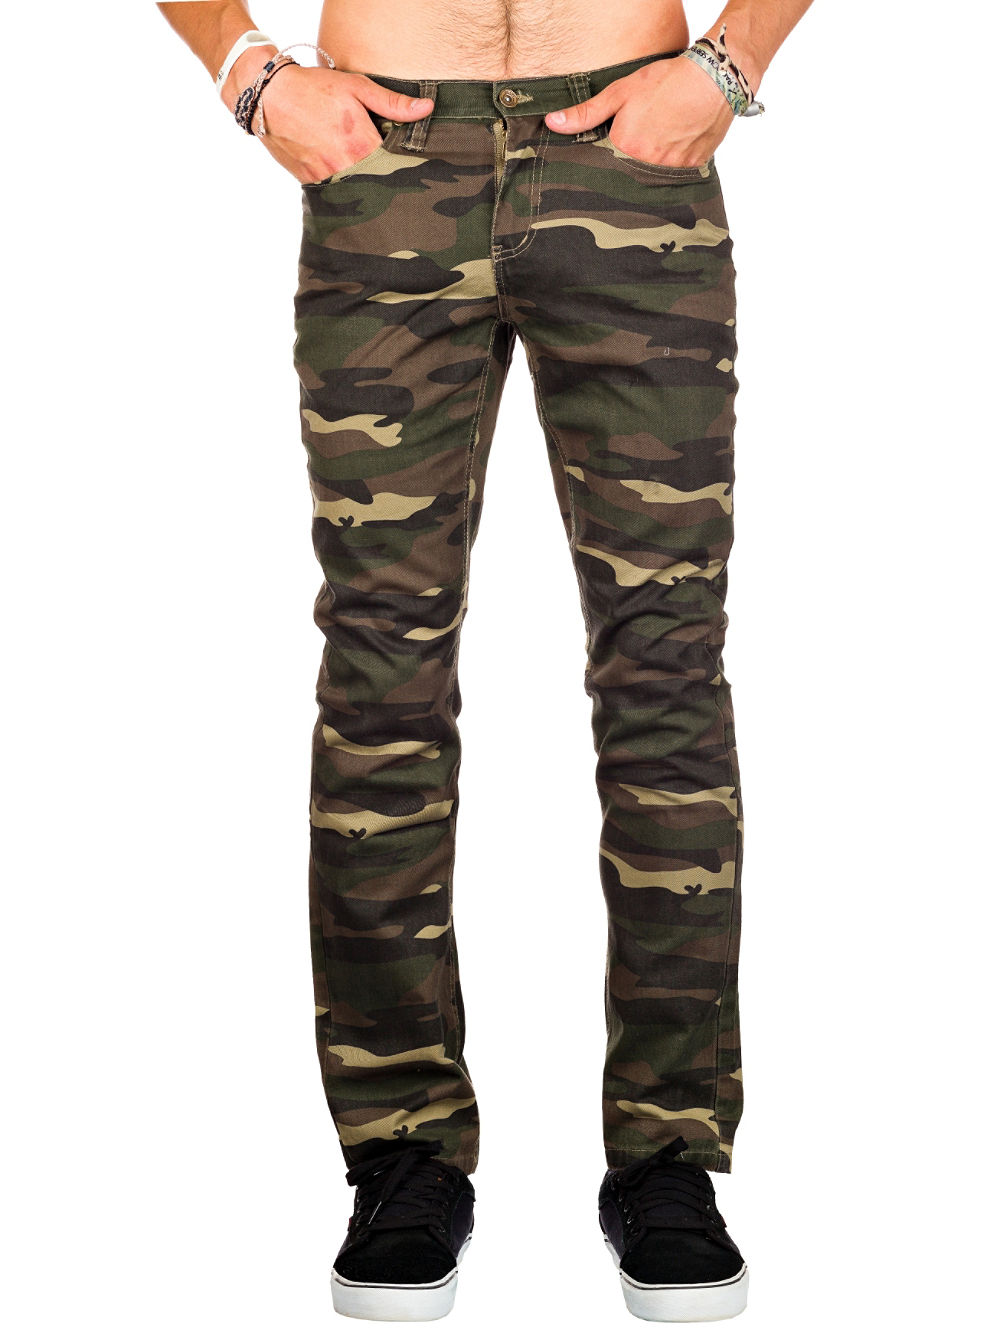 Buy Free World Messenger Pants Camo online at blue-tomato.com